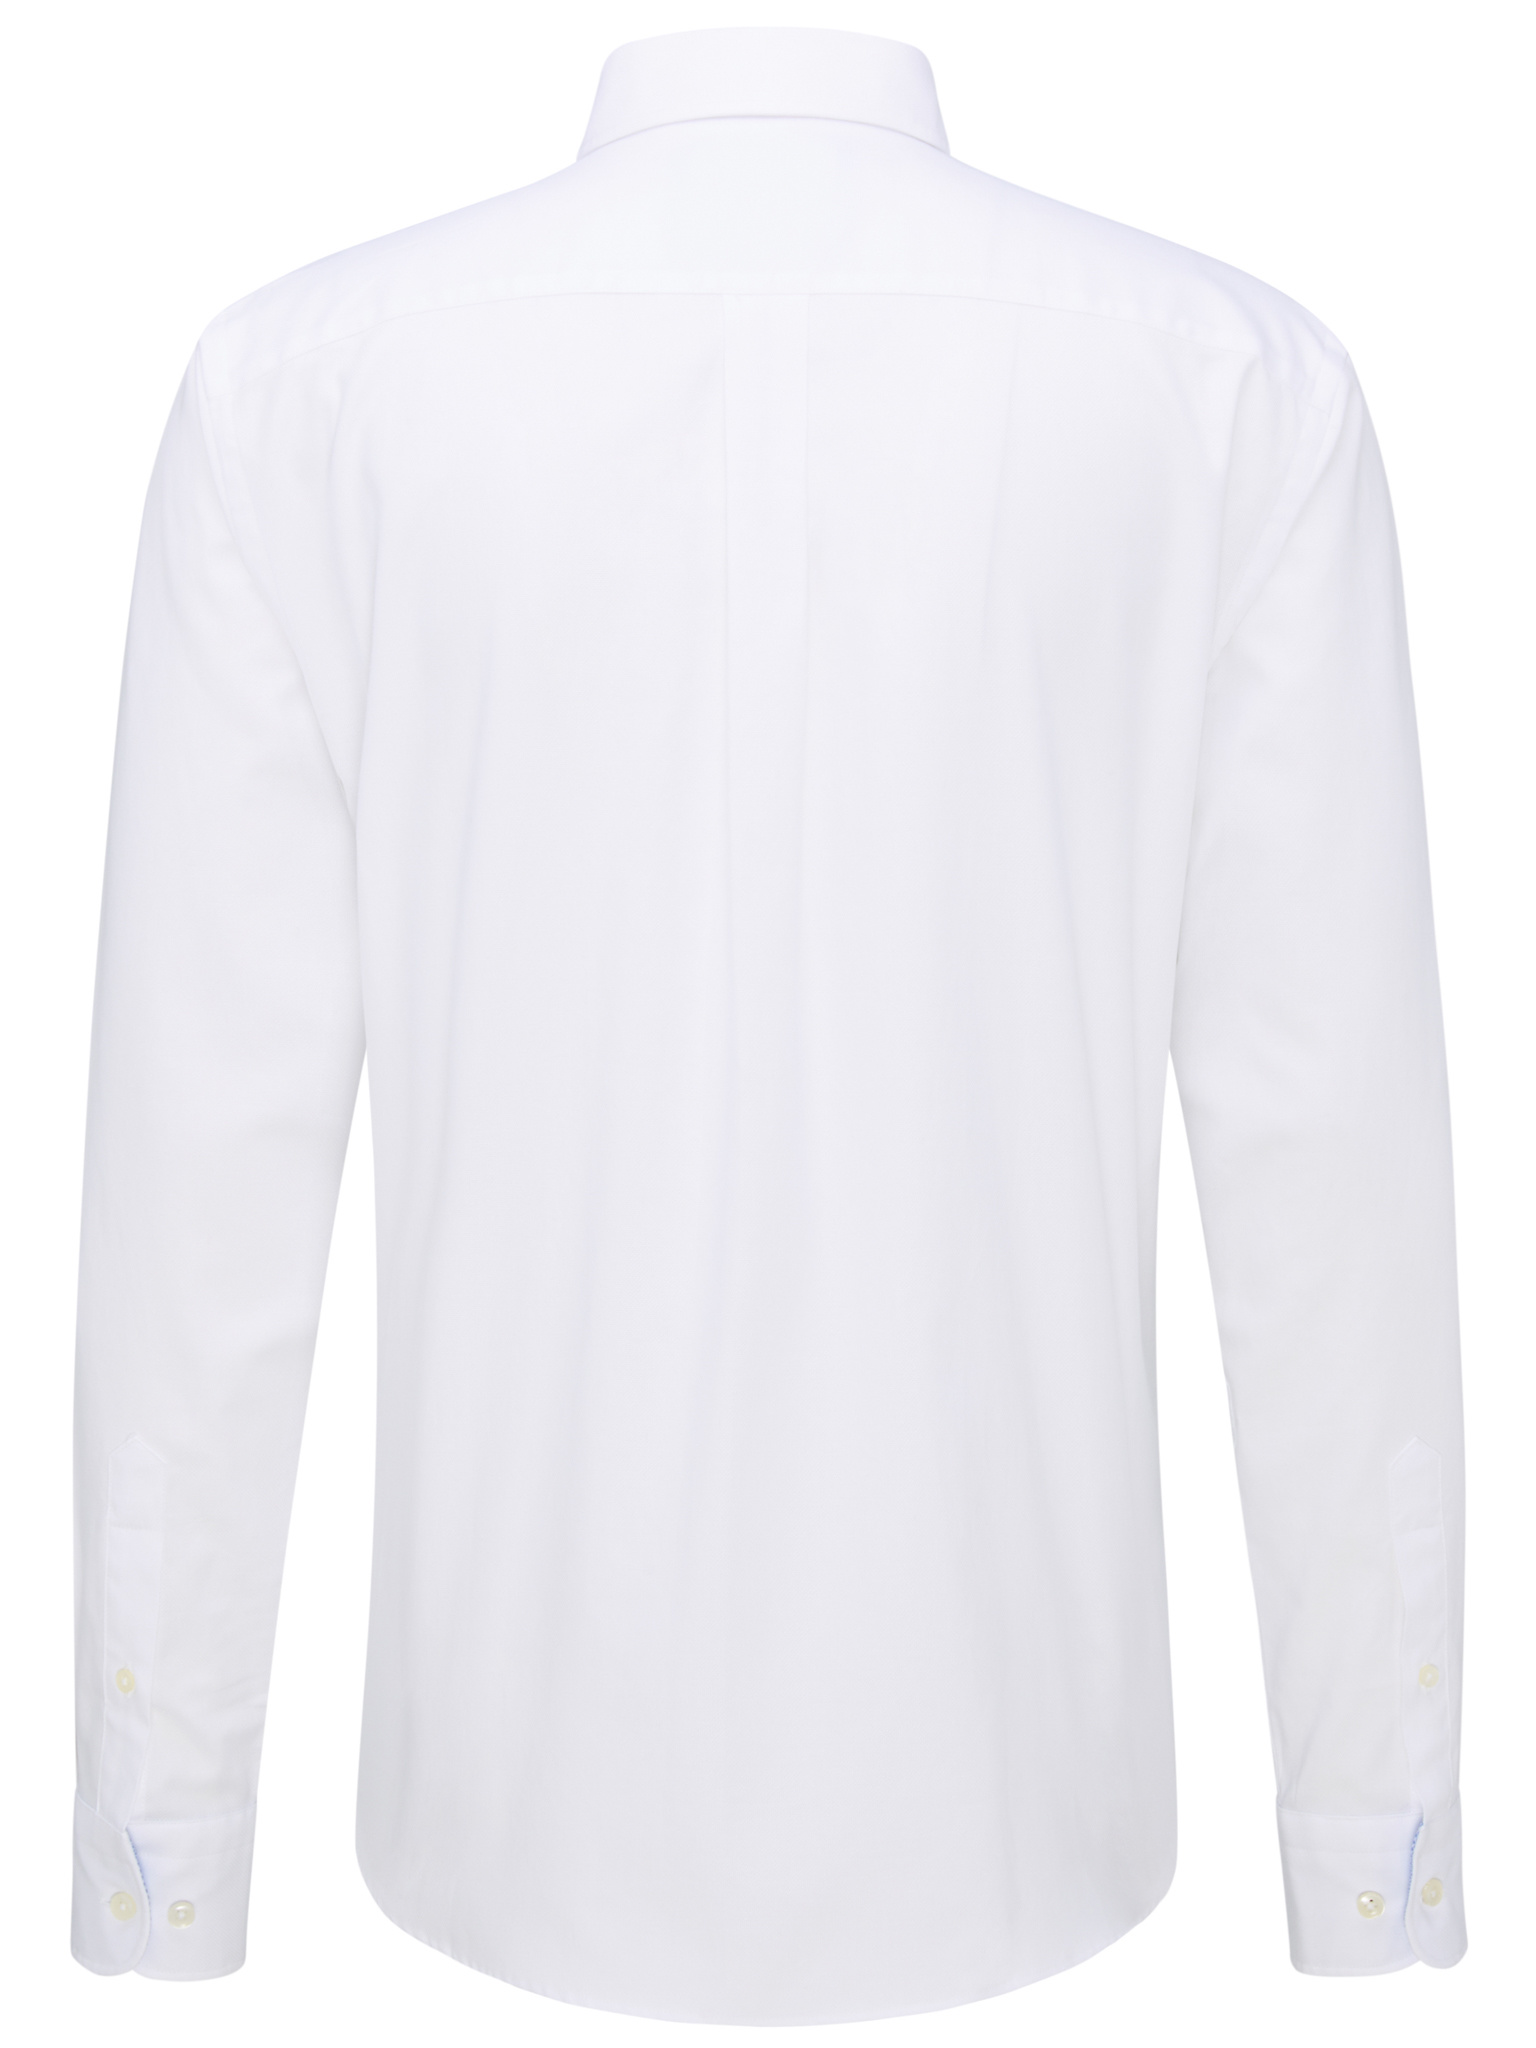 FYNCH chemise blanche-2